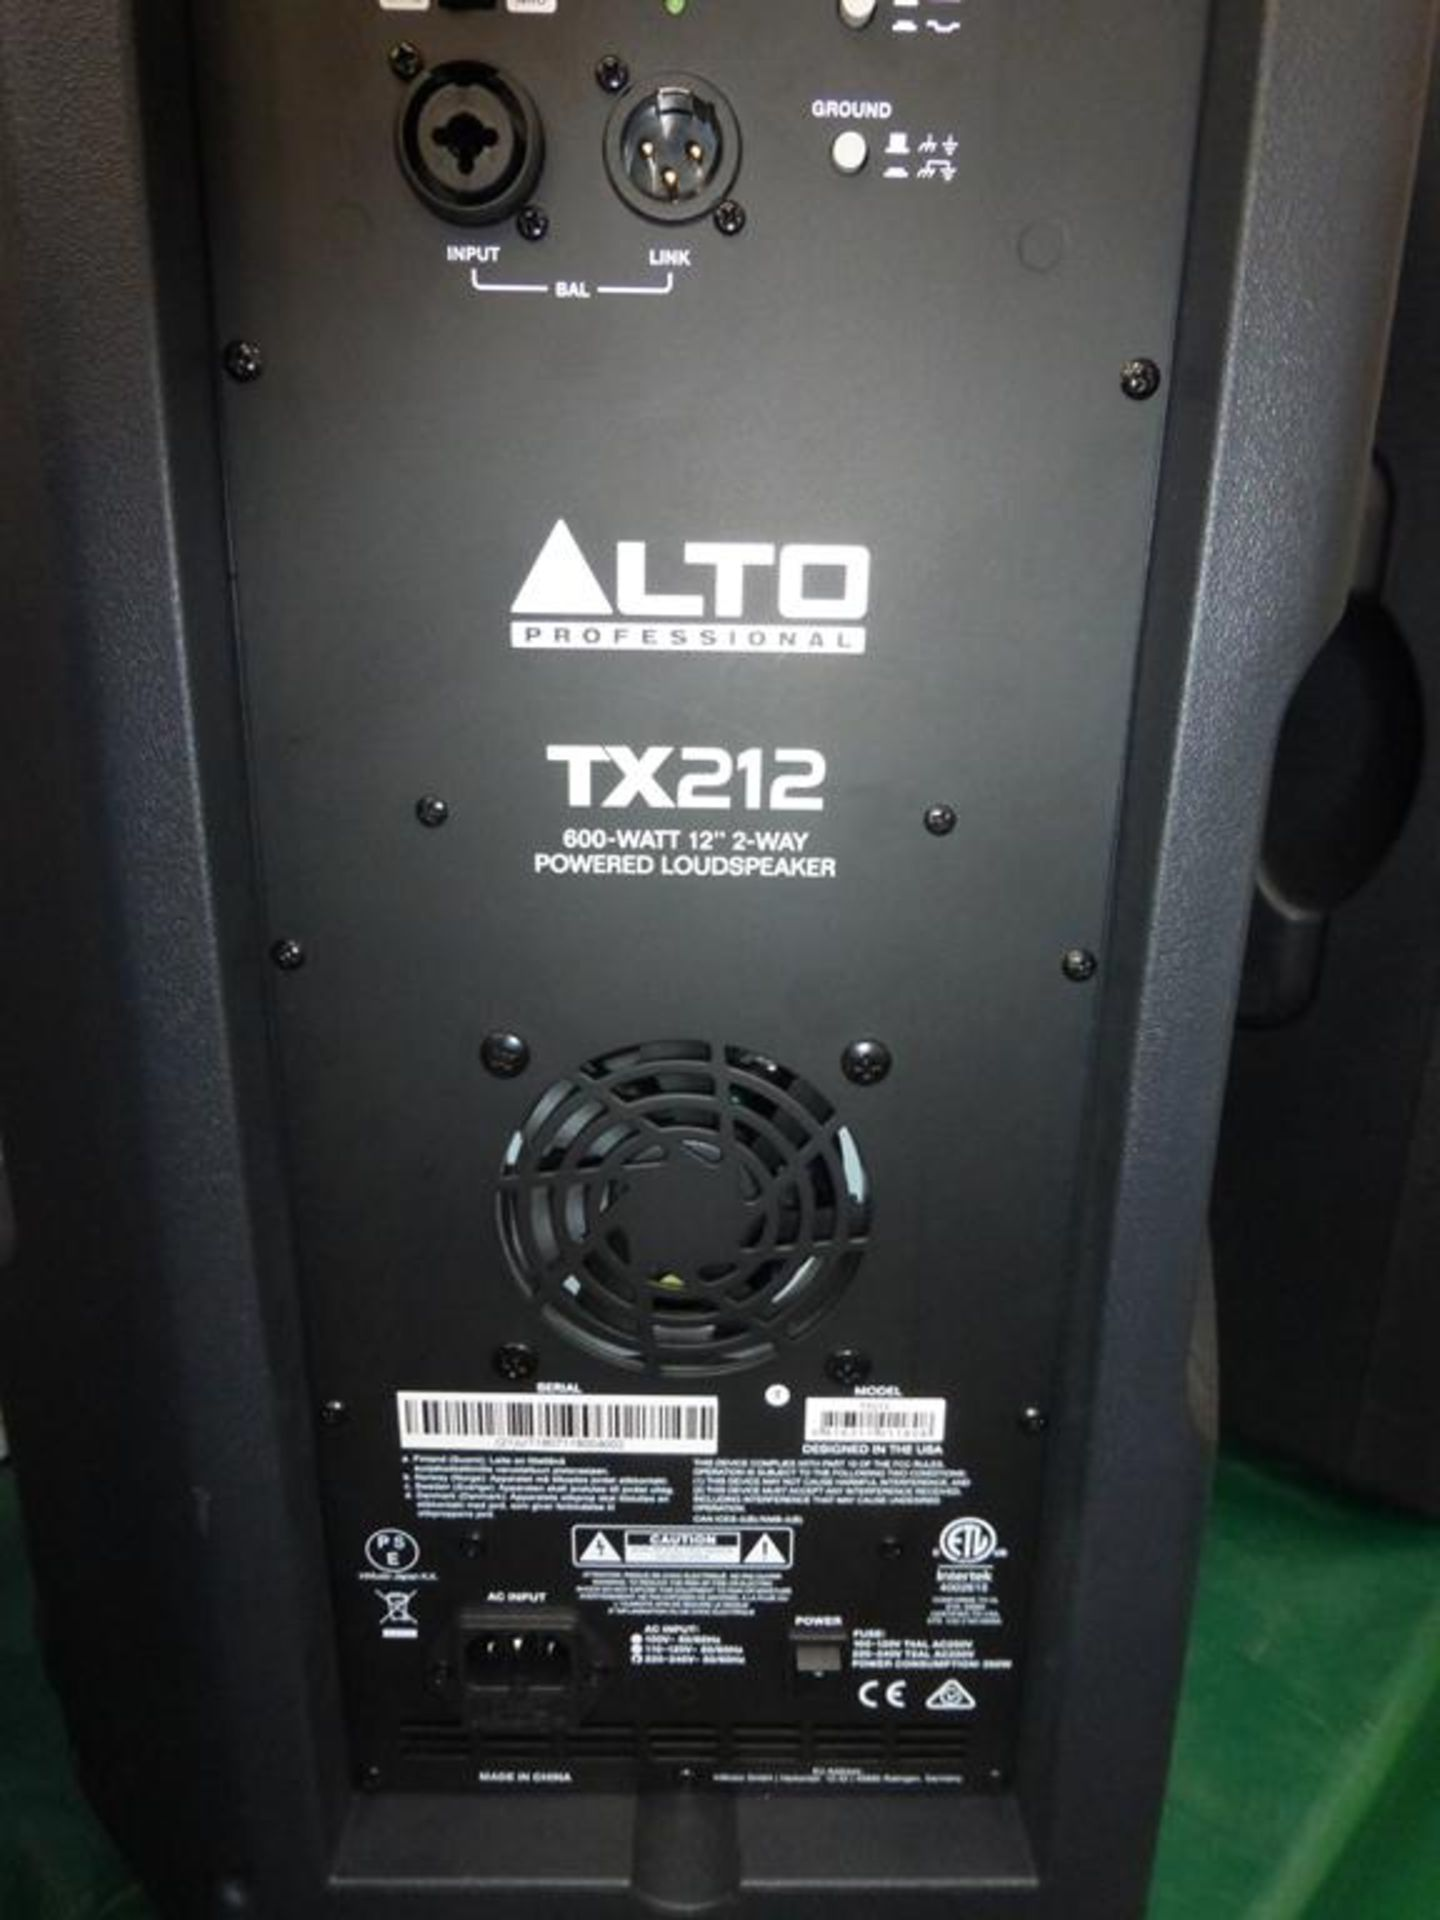 Lot 7 - * Alto Professional TX212 600W 12'' 2-way powered Loudspeaker, s/n (21) UT1807118004002, RRP £228